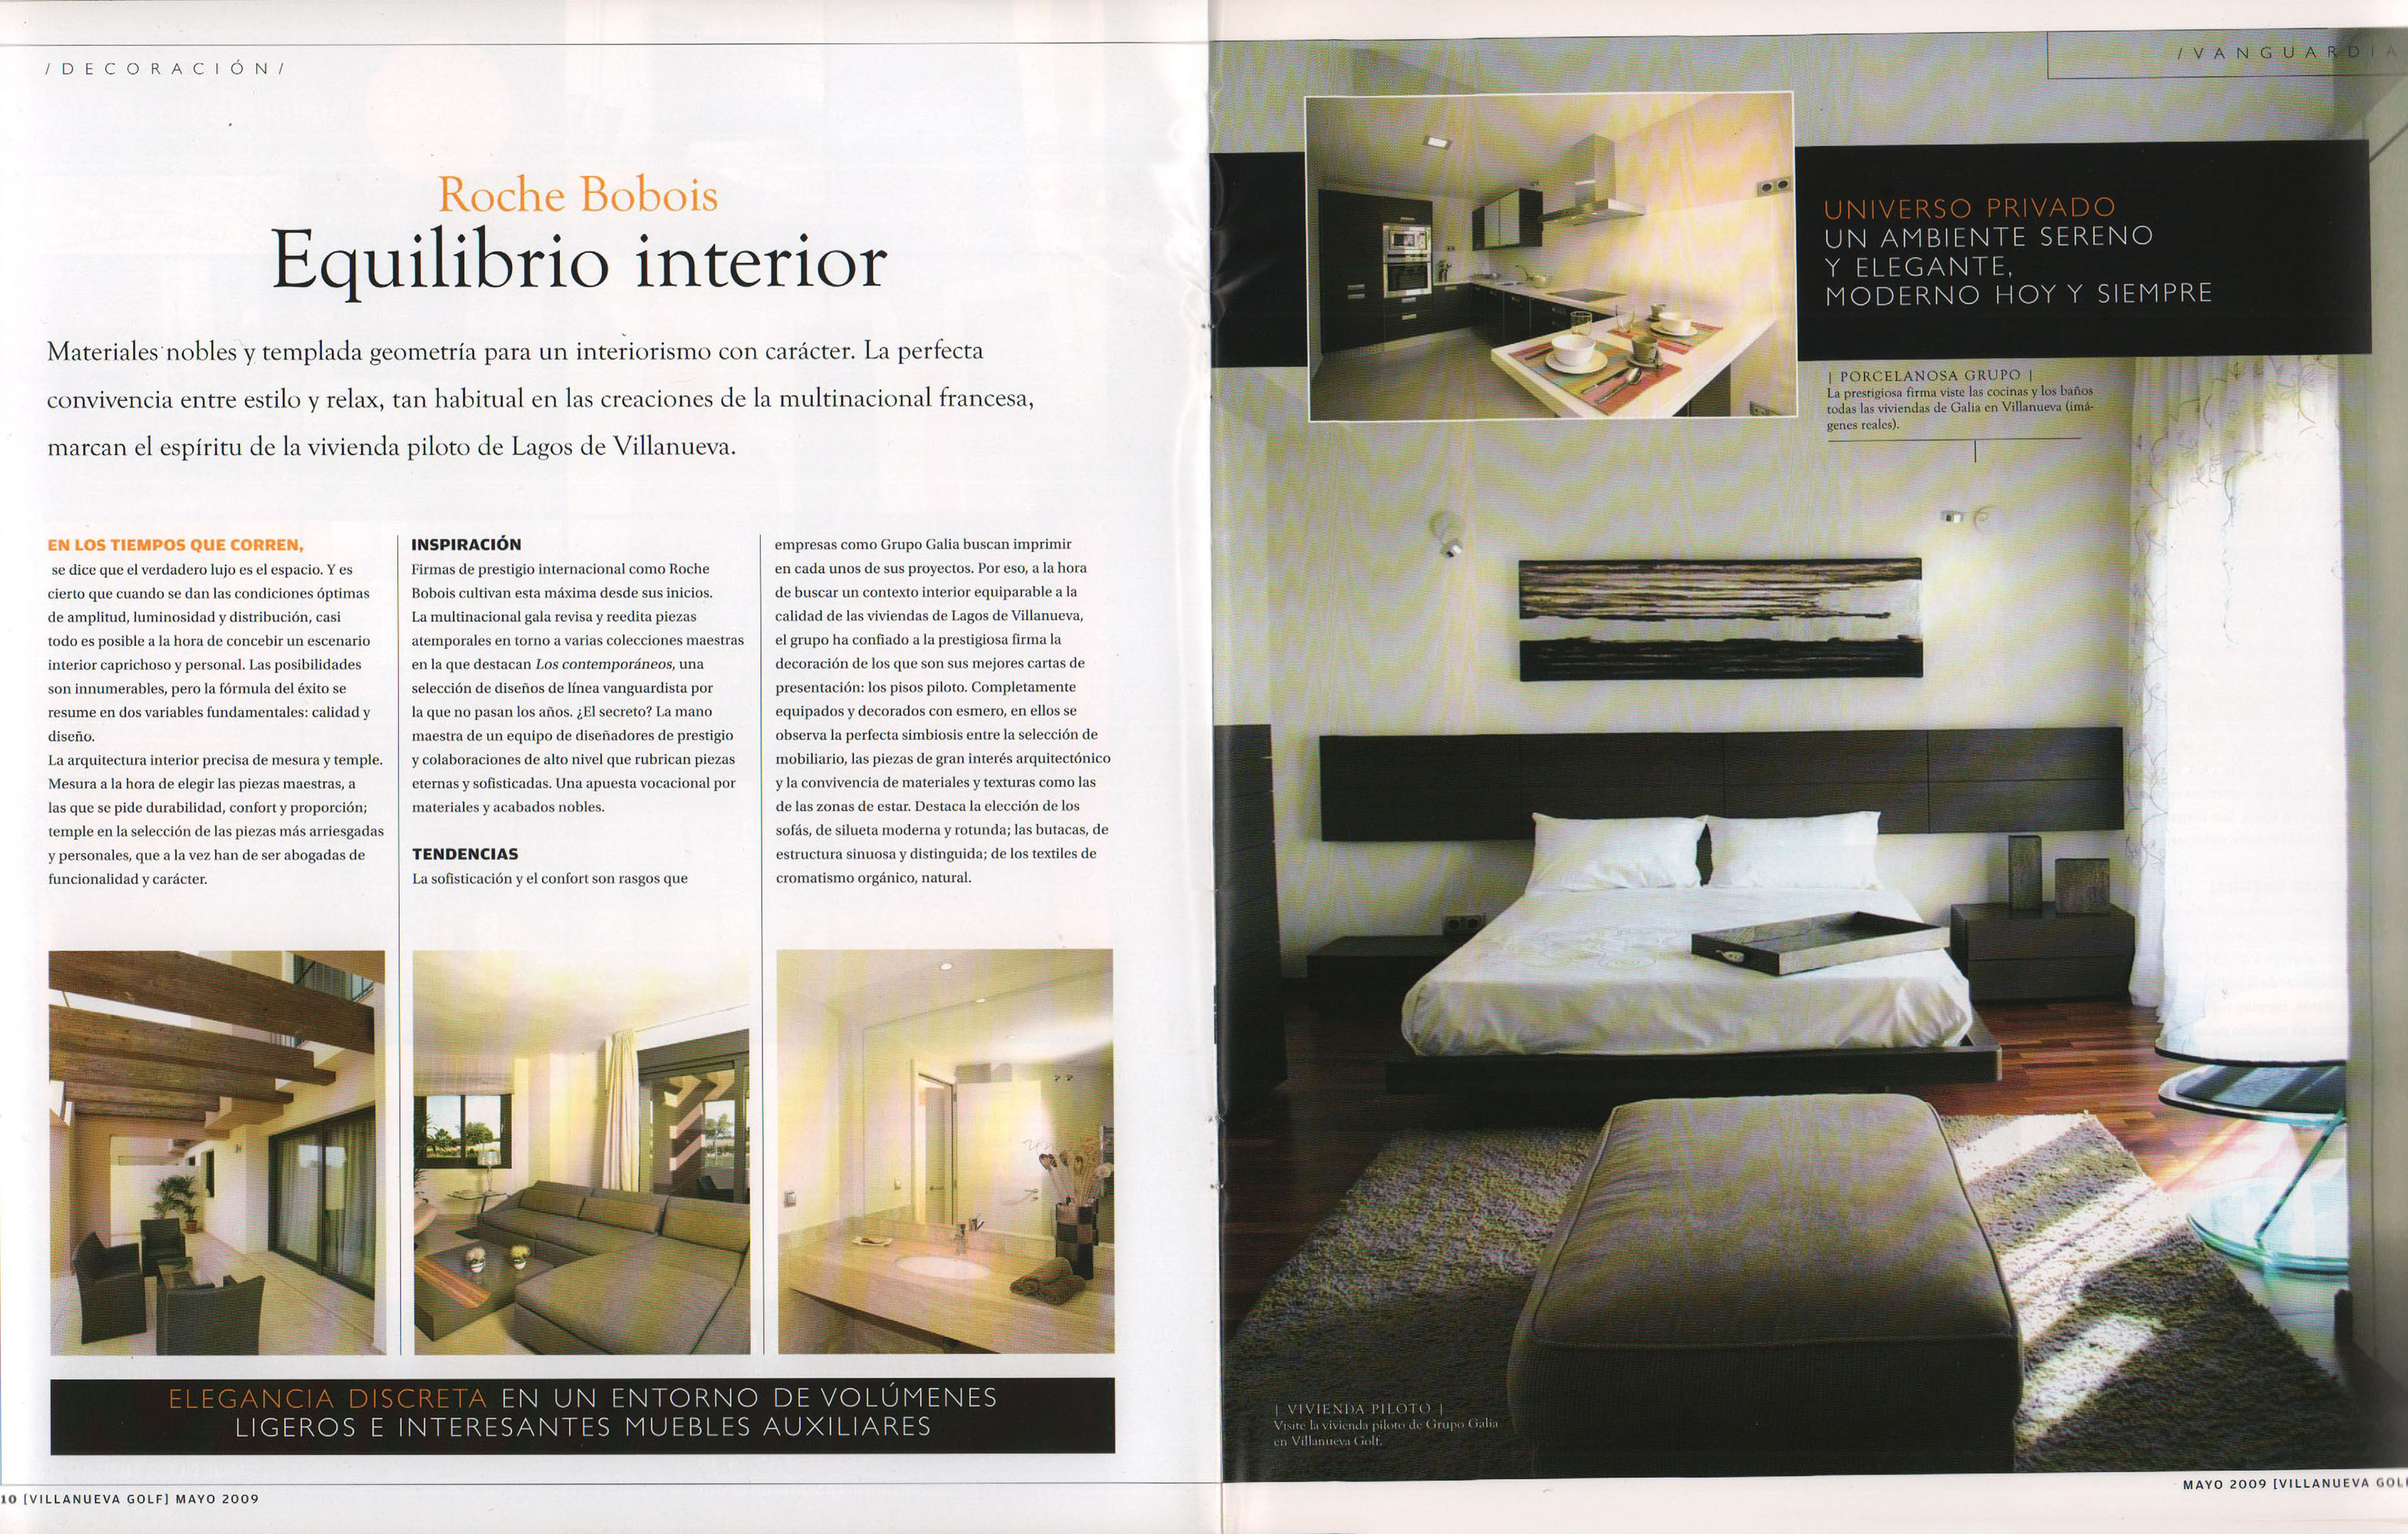 Roche Bobois - Equilibrio interior | Villanueva Golf Magazine | may 2009